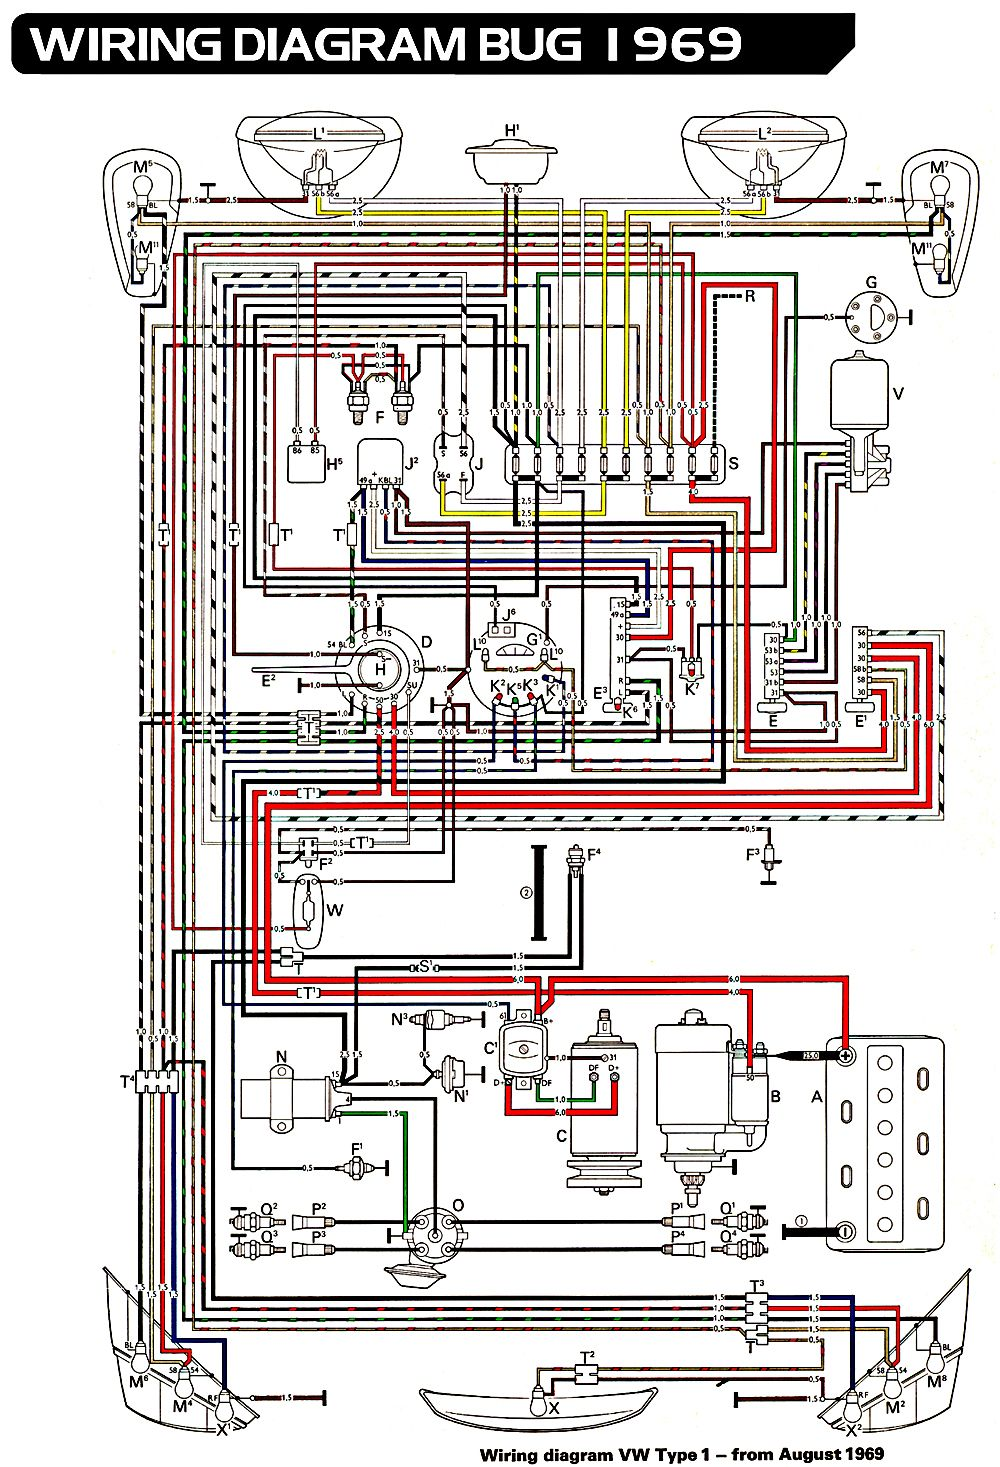 volkswagen beetle wiring diagram 1966 vw beetle wiring vw bug wiring schematic vw bug wiring schematic